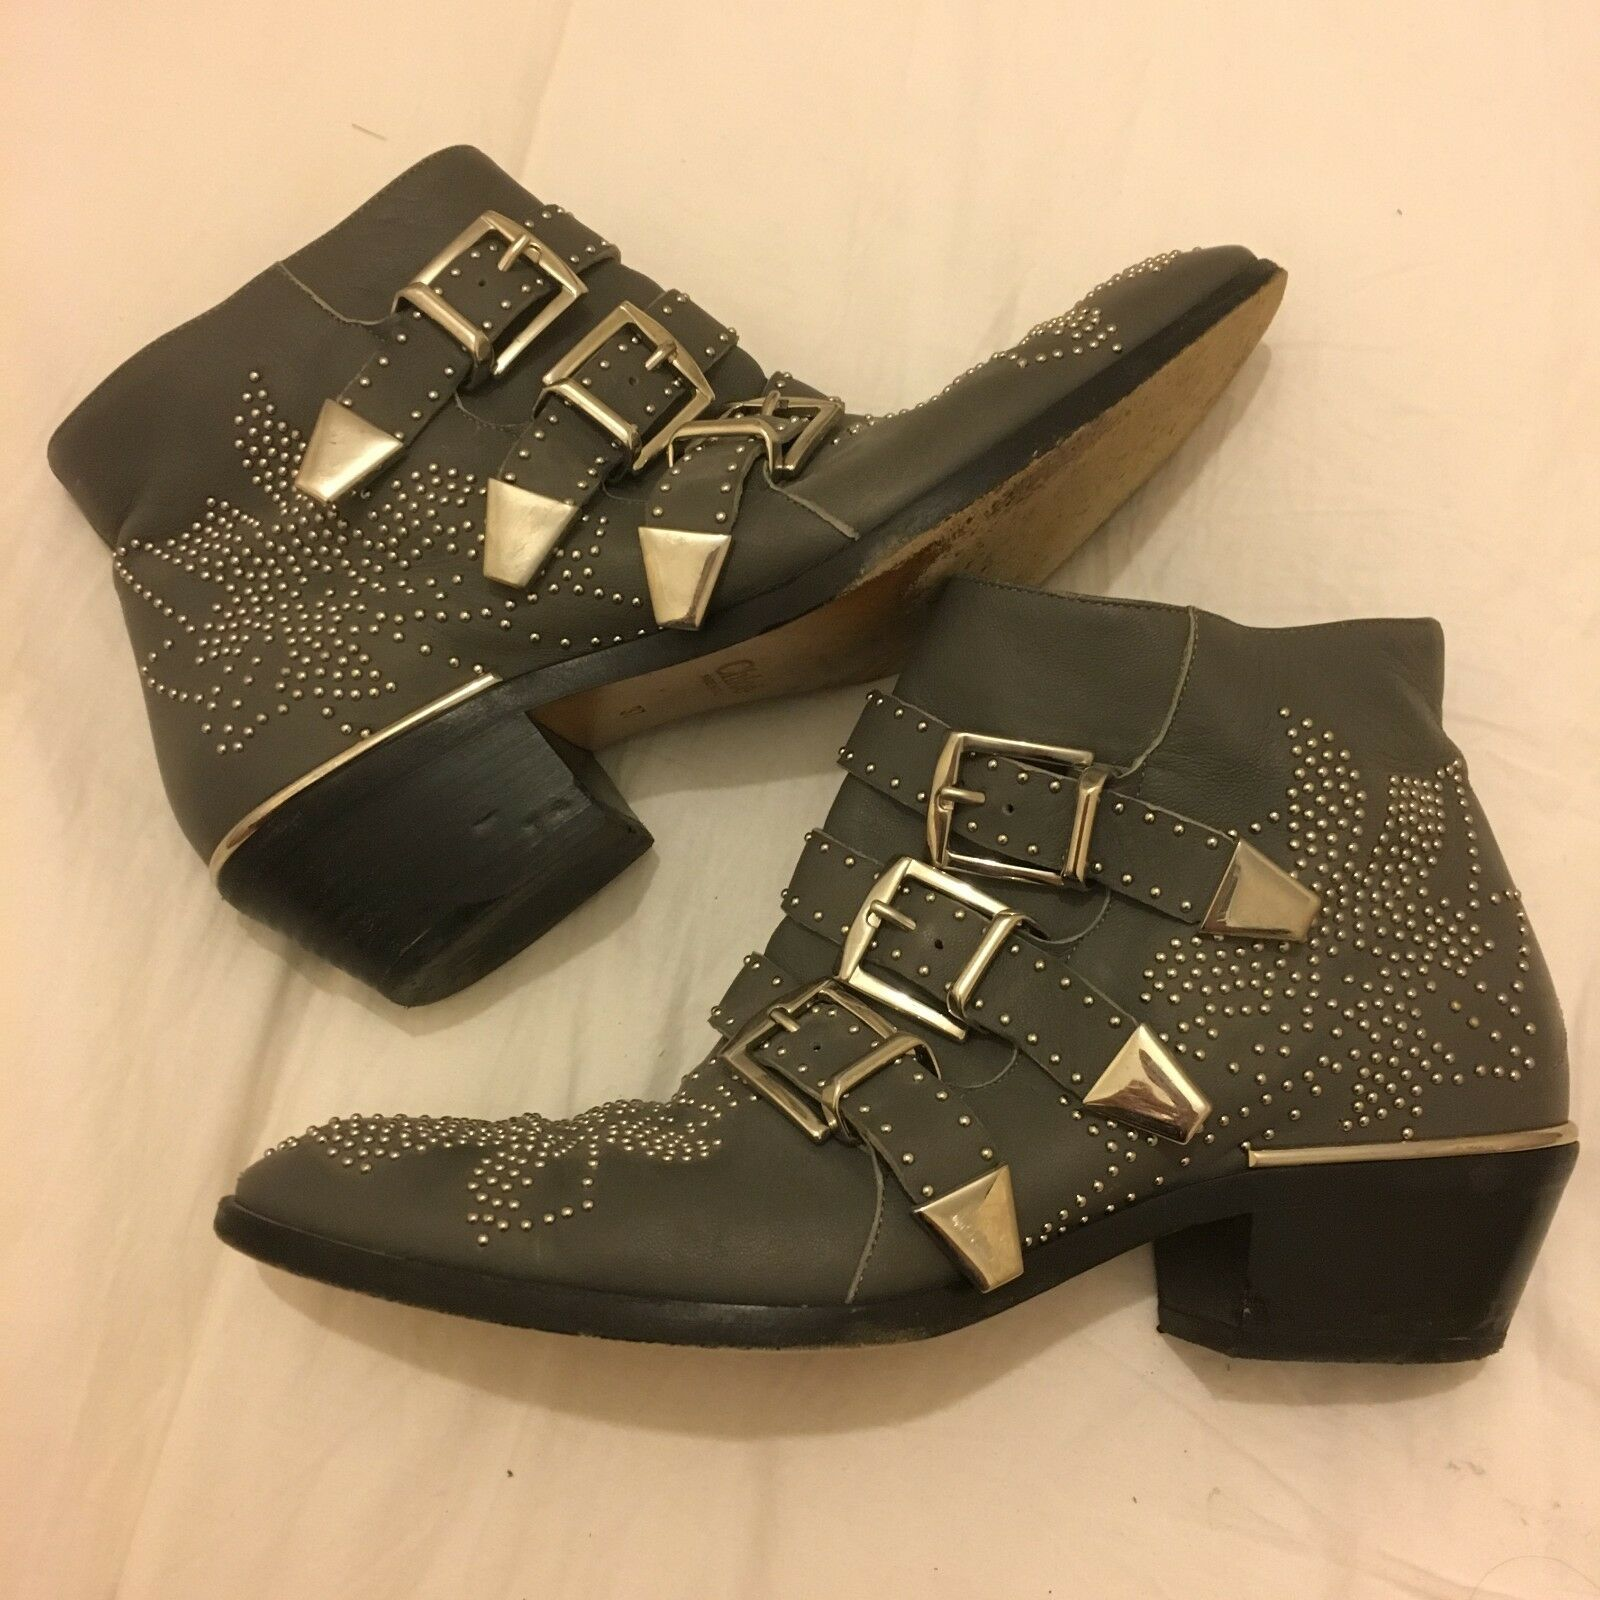 Chloe susanna ankle boots, size 37, grey with silver studs